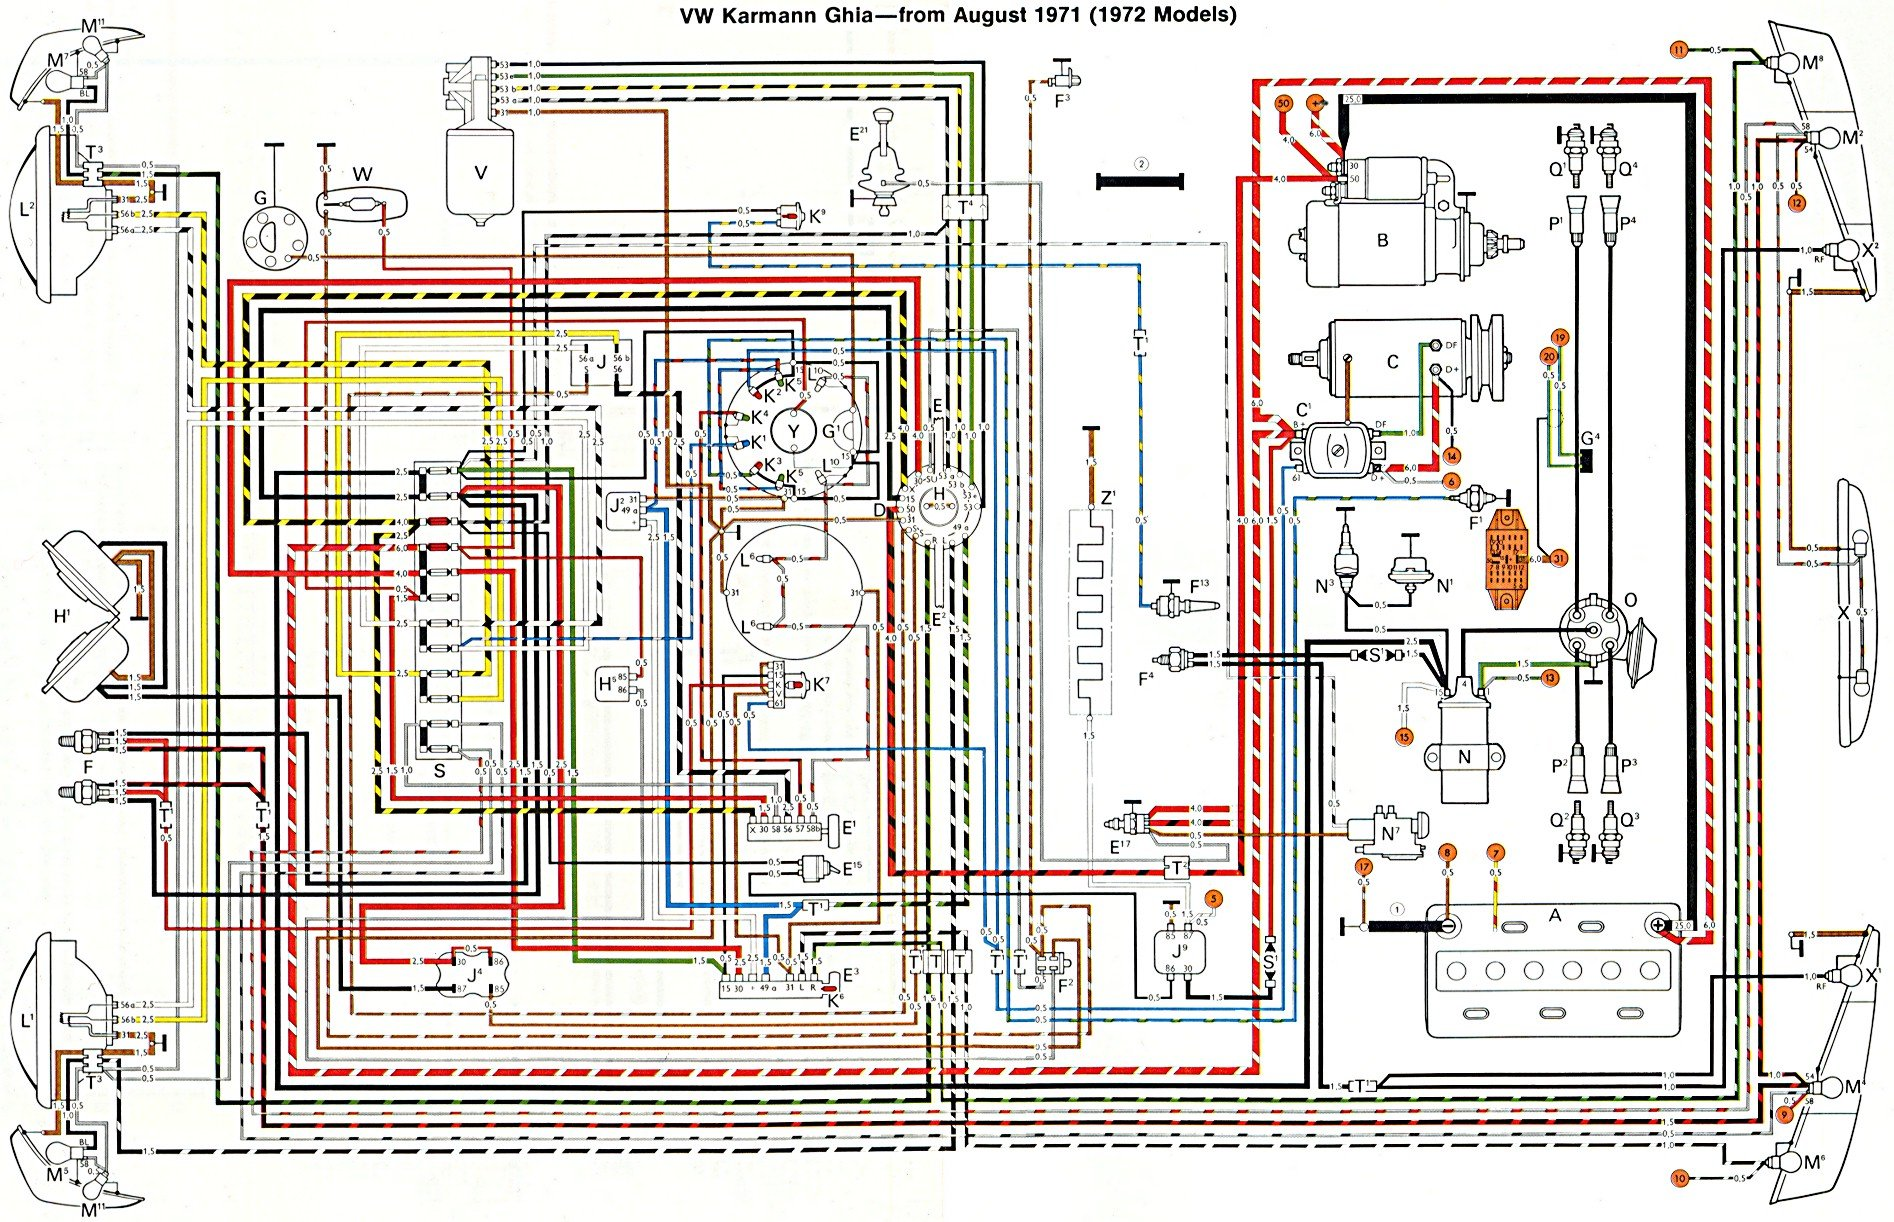 72ghia thesamba com karmann ghia wiring diagrams 1969 firebird wiring diagram at alyssarenee.co